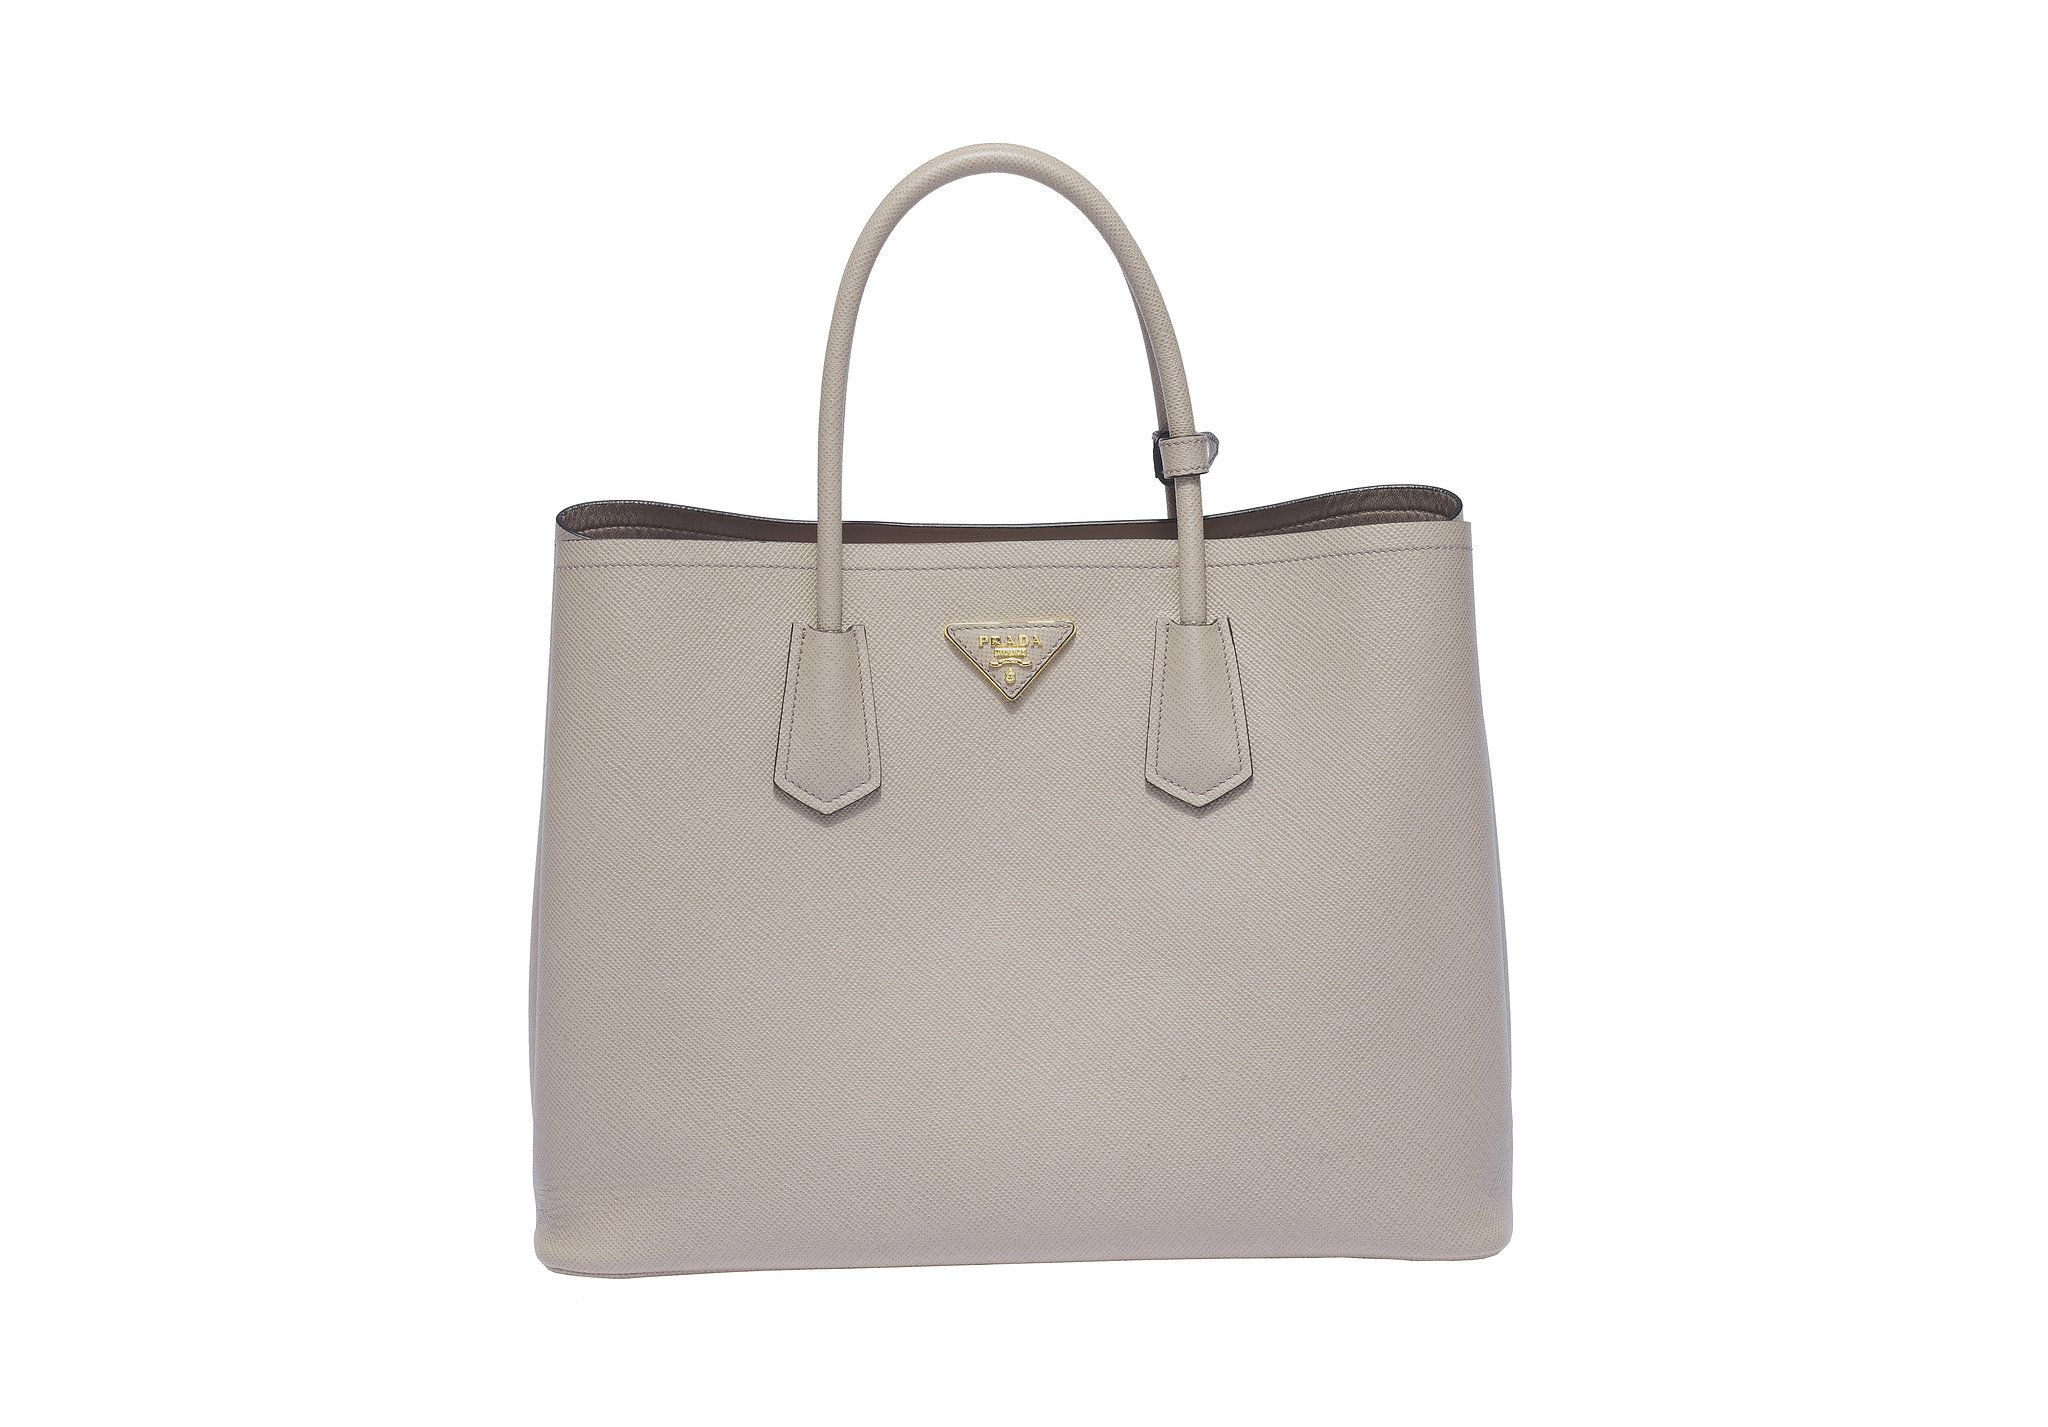 a2954f9897f9e2 official prada pomice saffiano lux leather double zip large tote bag bn1786  16503 912df; low price prada double bag in pomice 3c20a 43ac9